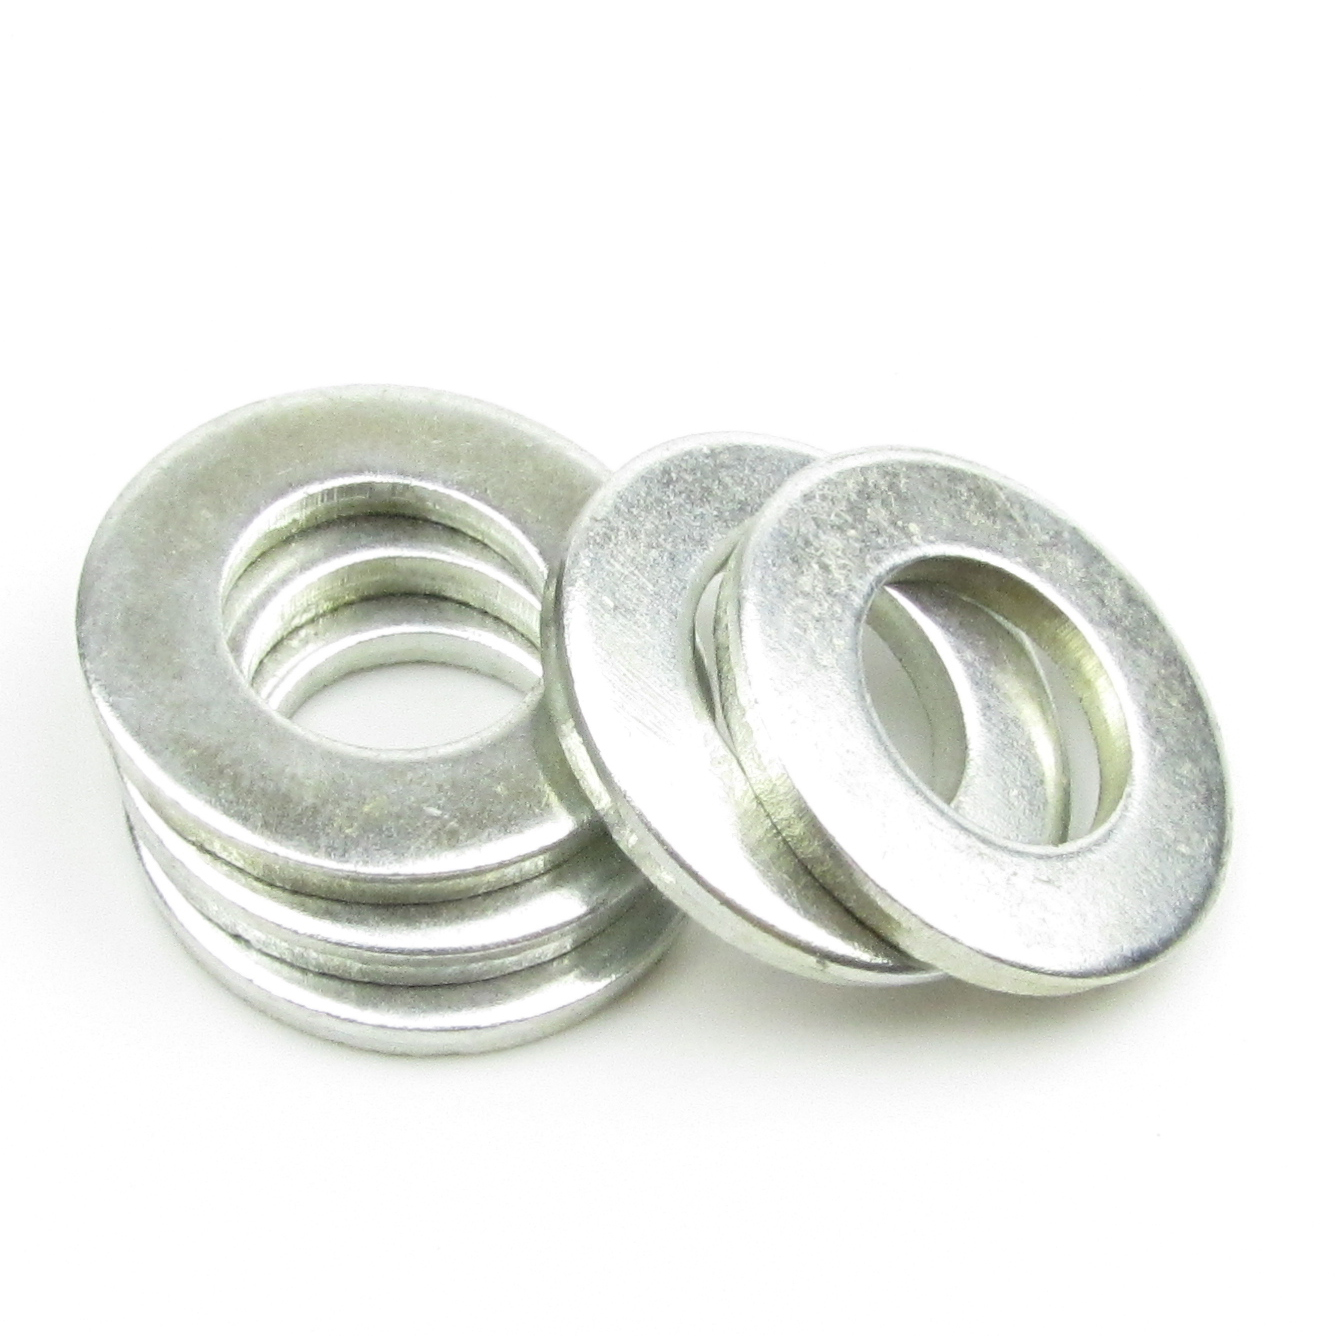 Galvanized flat washer washer washer/pad galvanized screws galvanized flat washers washer washer m3/m4-m36